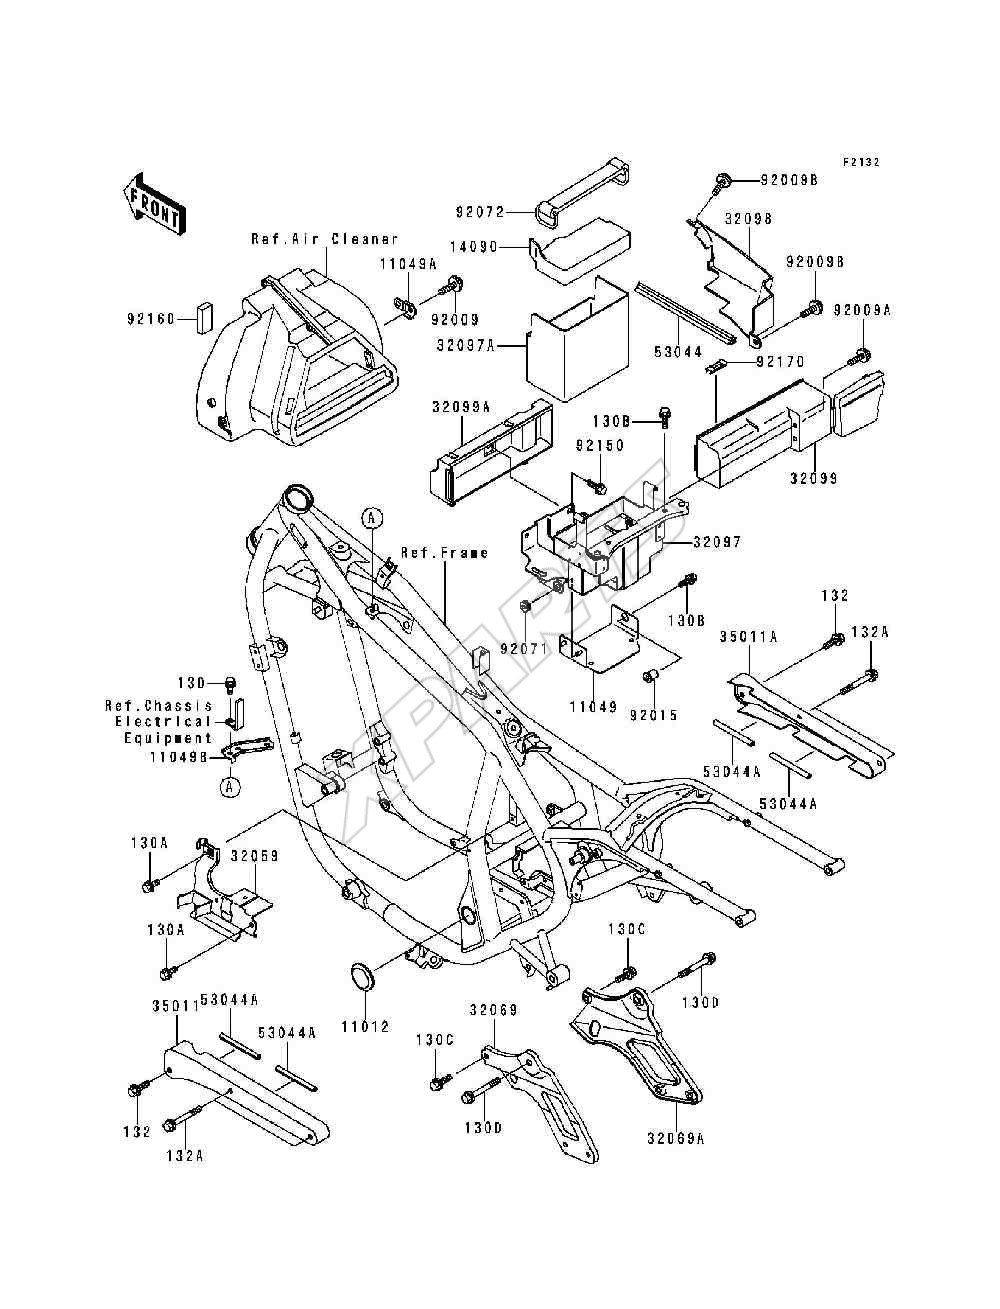 Kawasaki 900 Wiring Diagram Library Vulcan 1600 Classic Fuel Filter Location Get Free 750 500